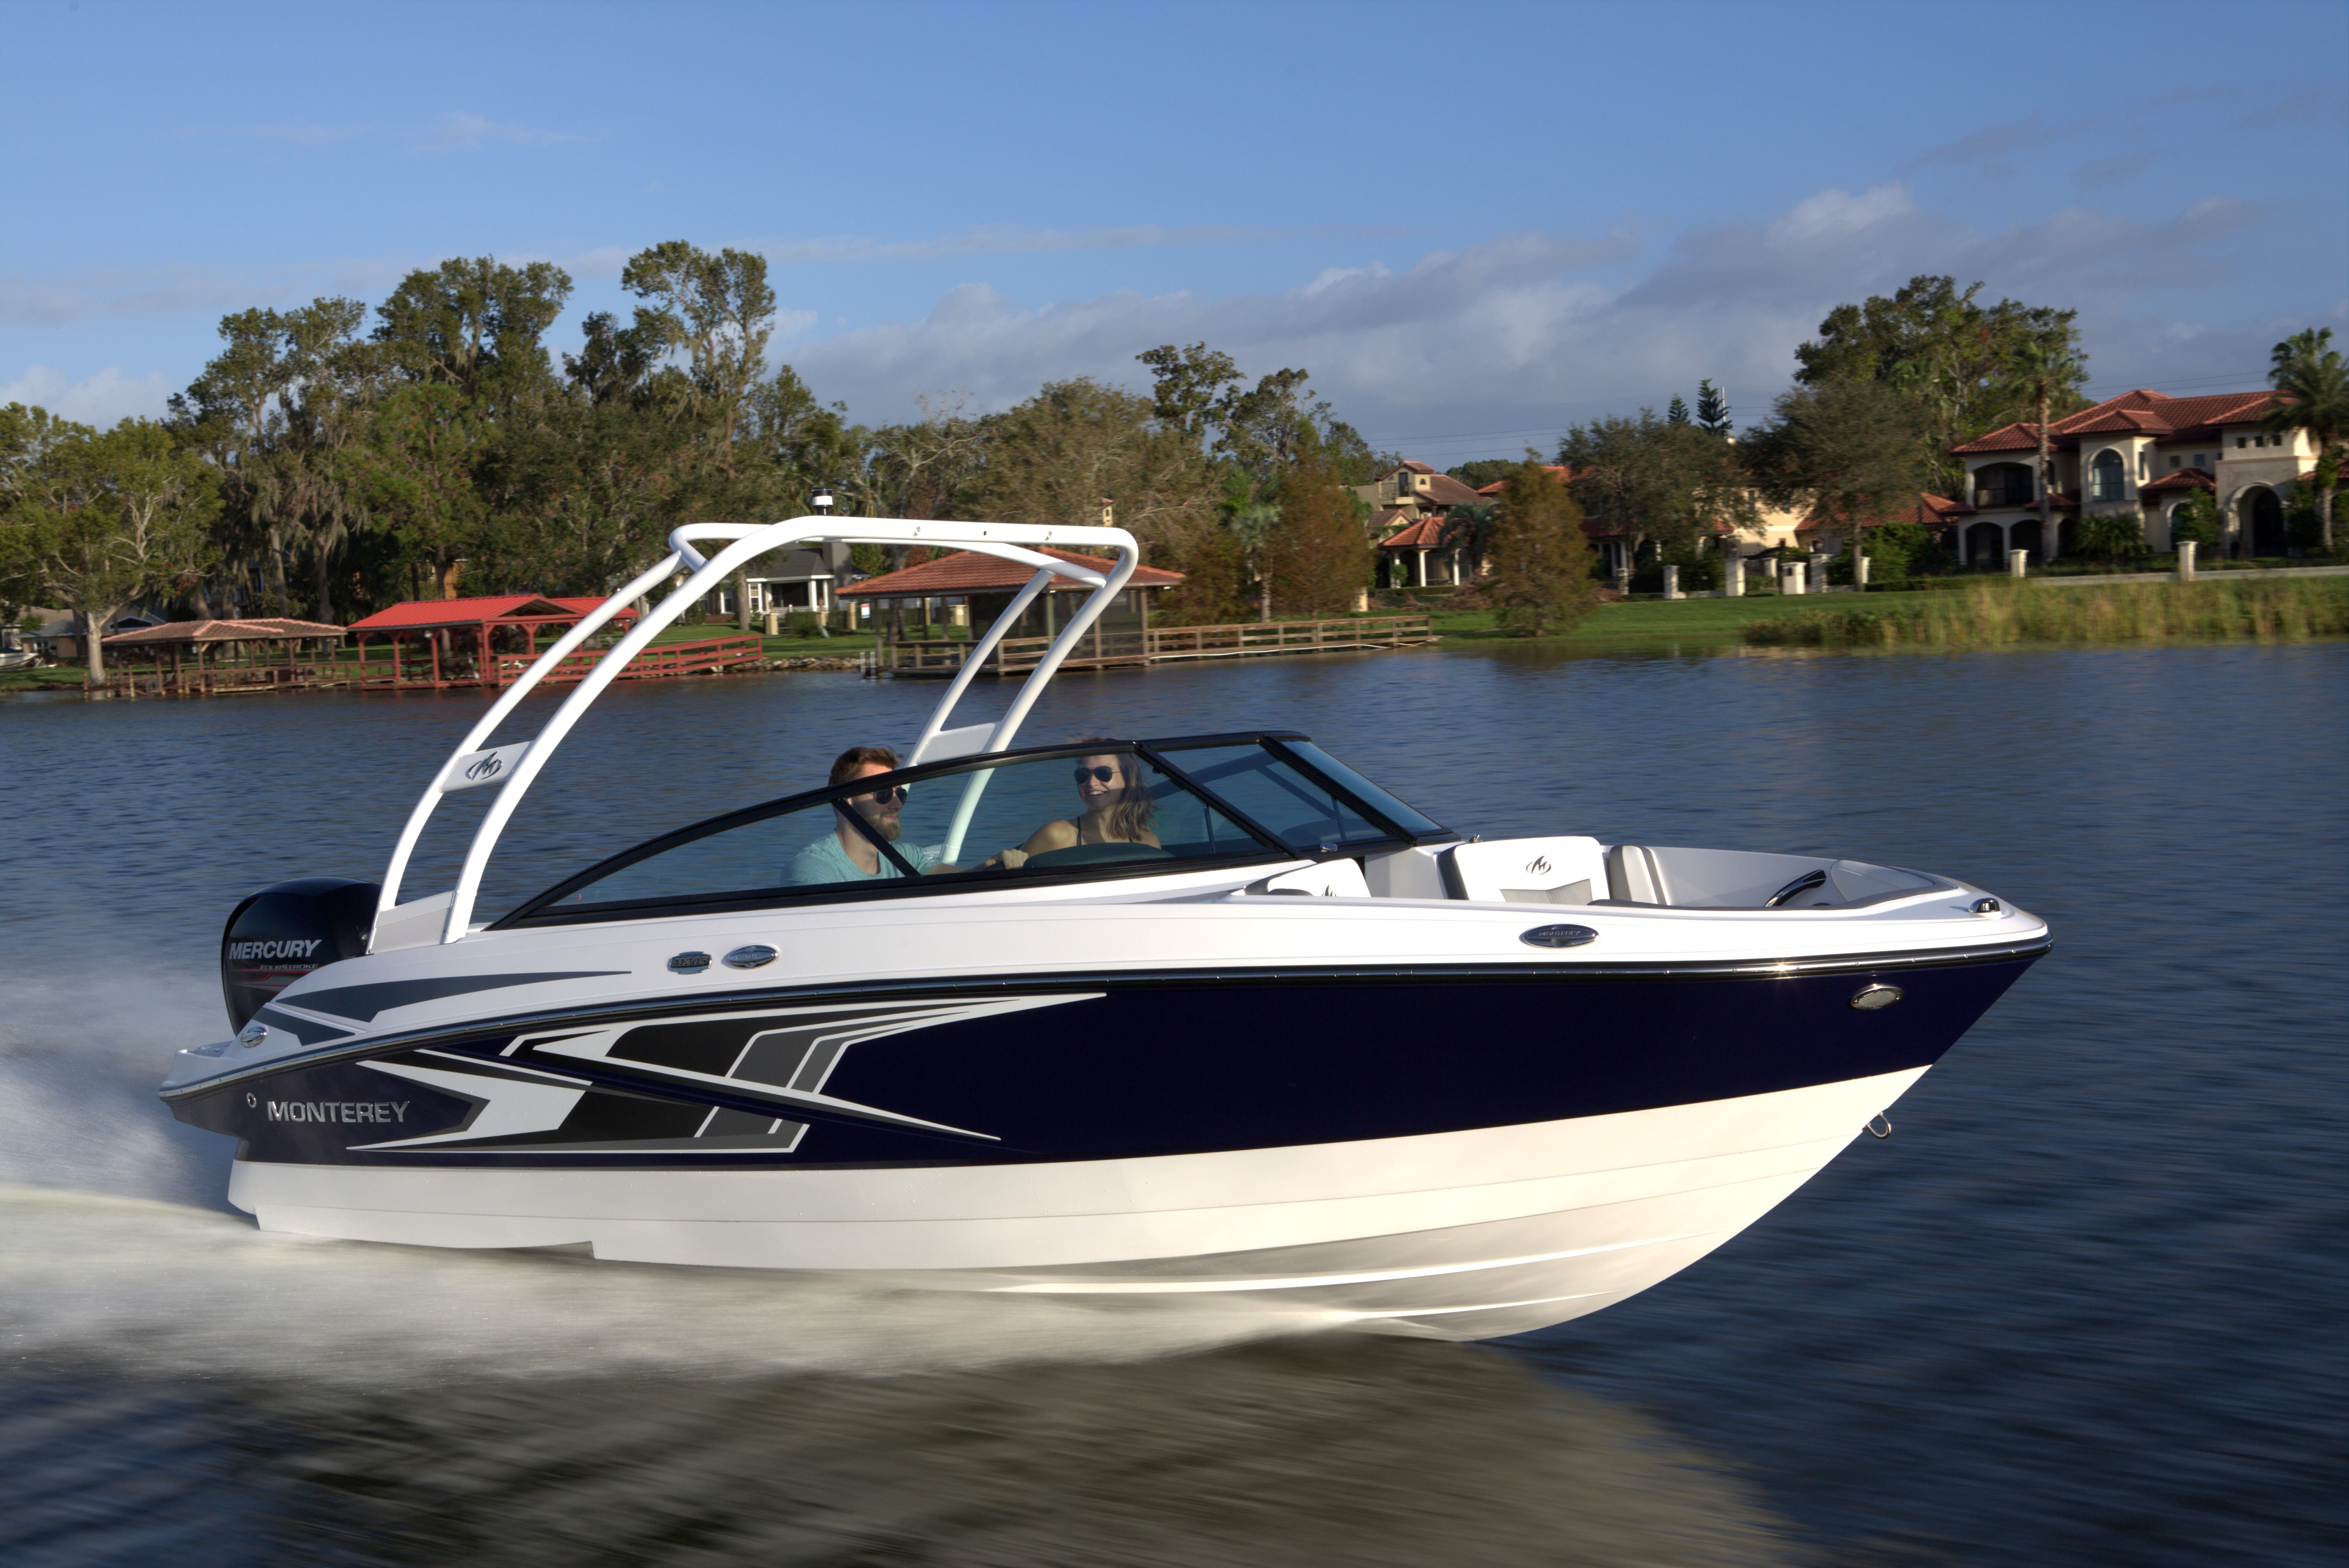 2022 Monterey boat for sale, model of the boat is M-205 & Image # 2 of 4